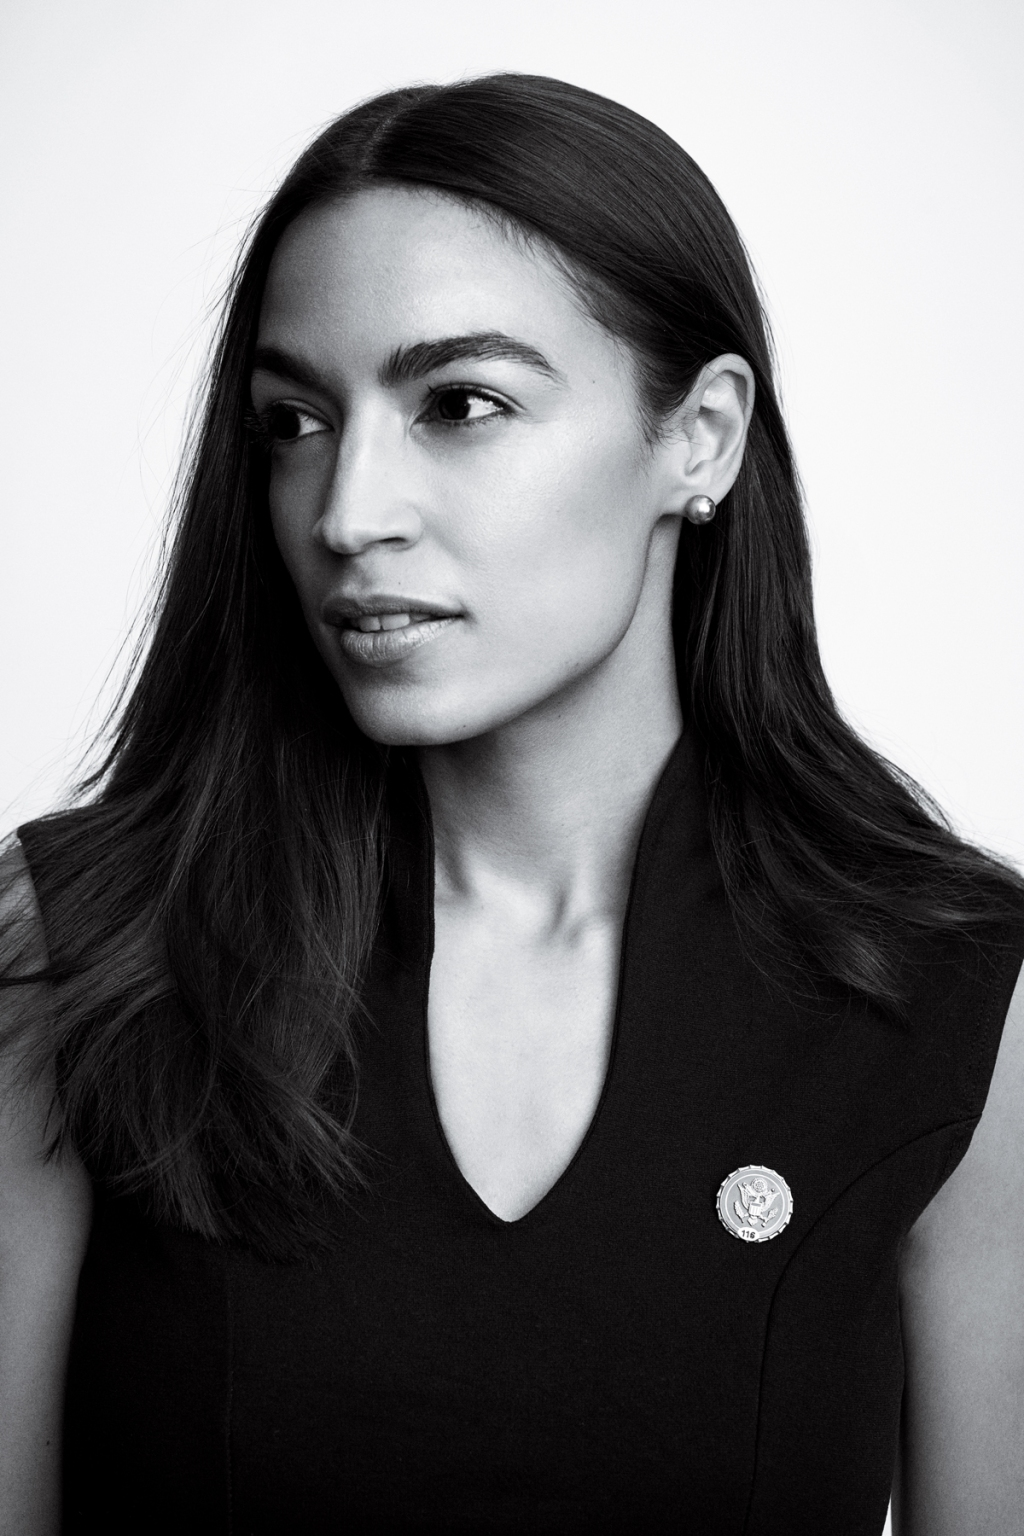 """""""I don't care what's in your heart if how you are voting is the same as someone who is actually racist. At the end of the day, they think that their intentions are gonna save them, but the actual decisions you make matter. I am tired of people saying, """"I'm gonna vote the same way as bigots, but I don't share the ideology of bigots."""" Well, you share the action and the agenda of bigots. We need to hold that accountable."""" Read the story"""